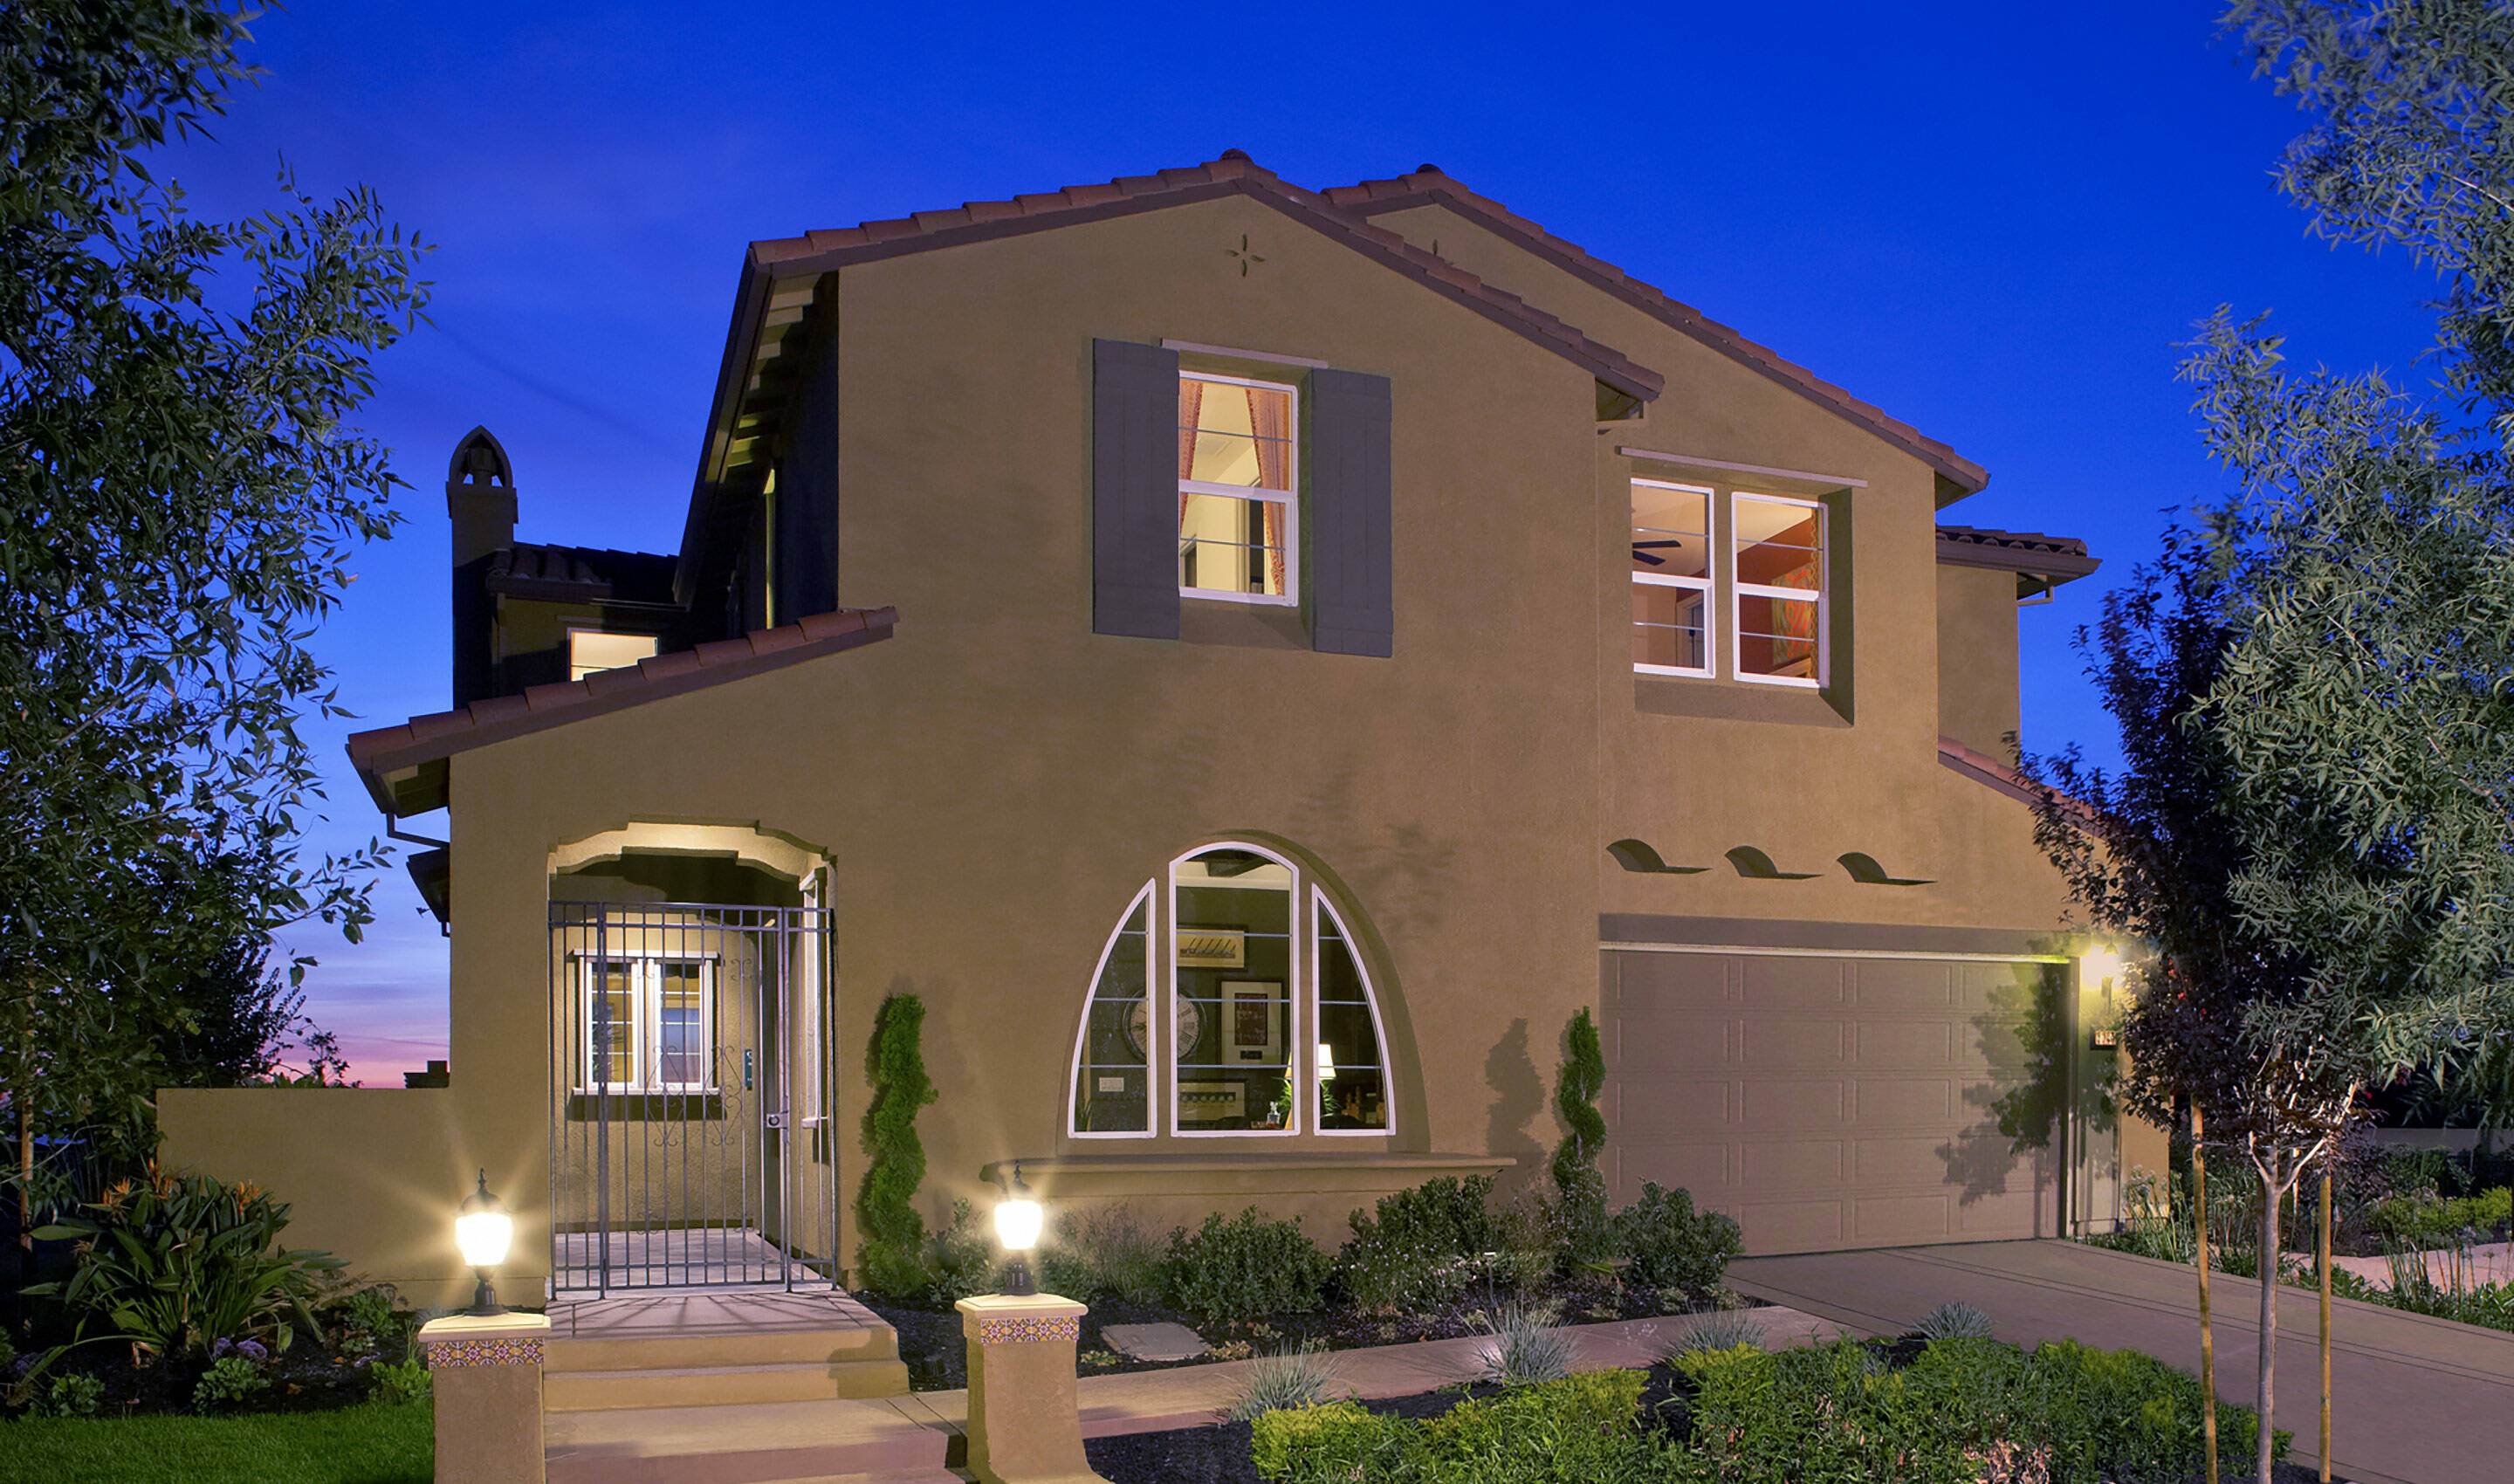 Exceptional Beautiful Cornerstone Home Design Photos   Decorating House 2017 .